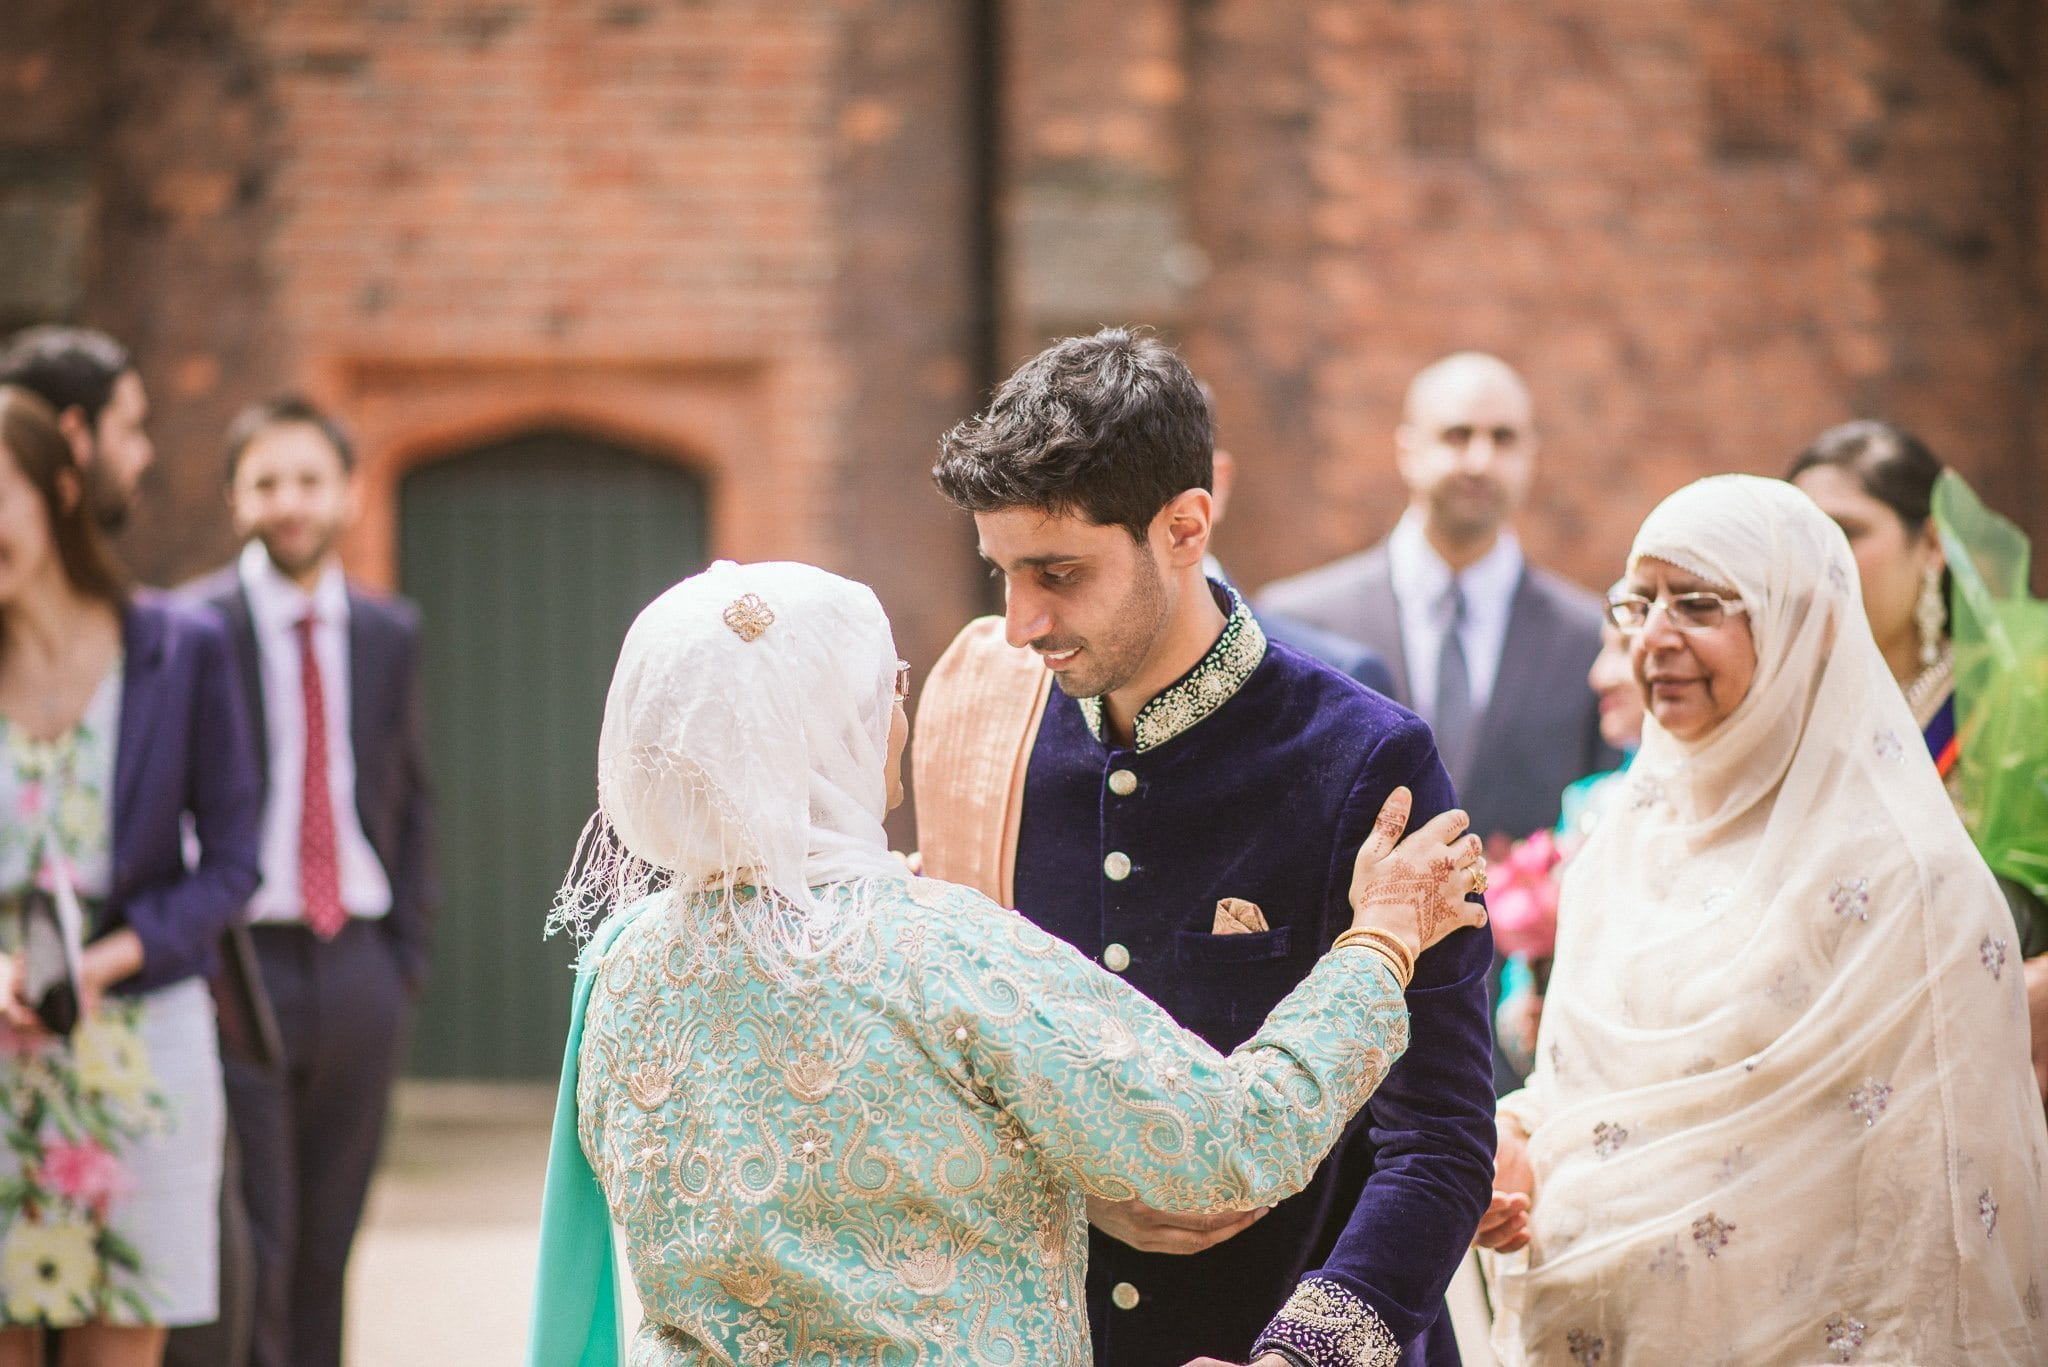 Groom Usman greets guests in the courtyard of Fulham Palace